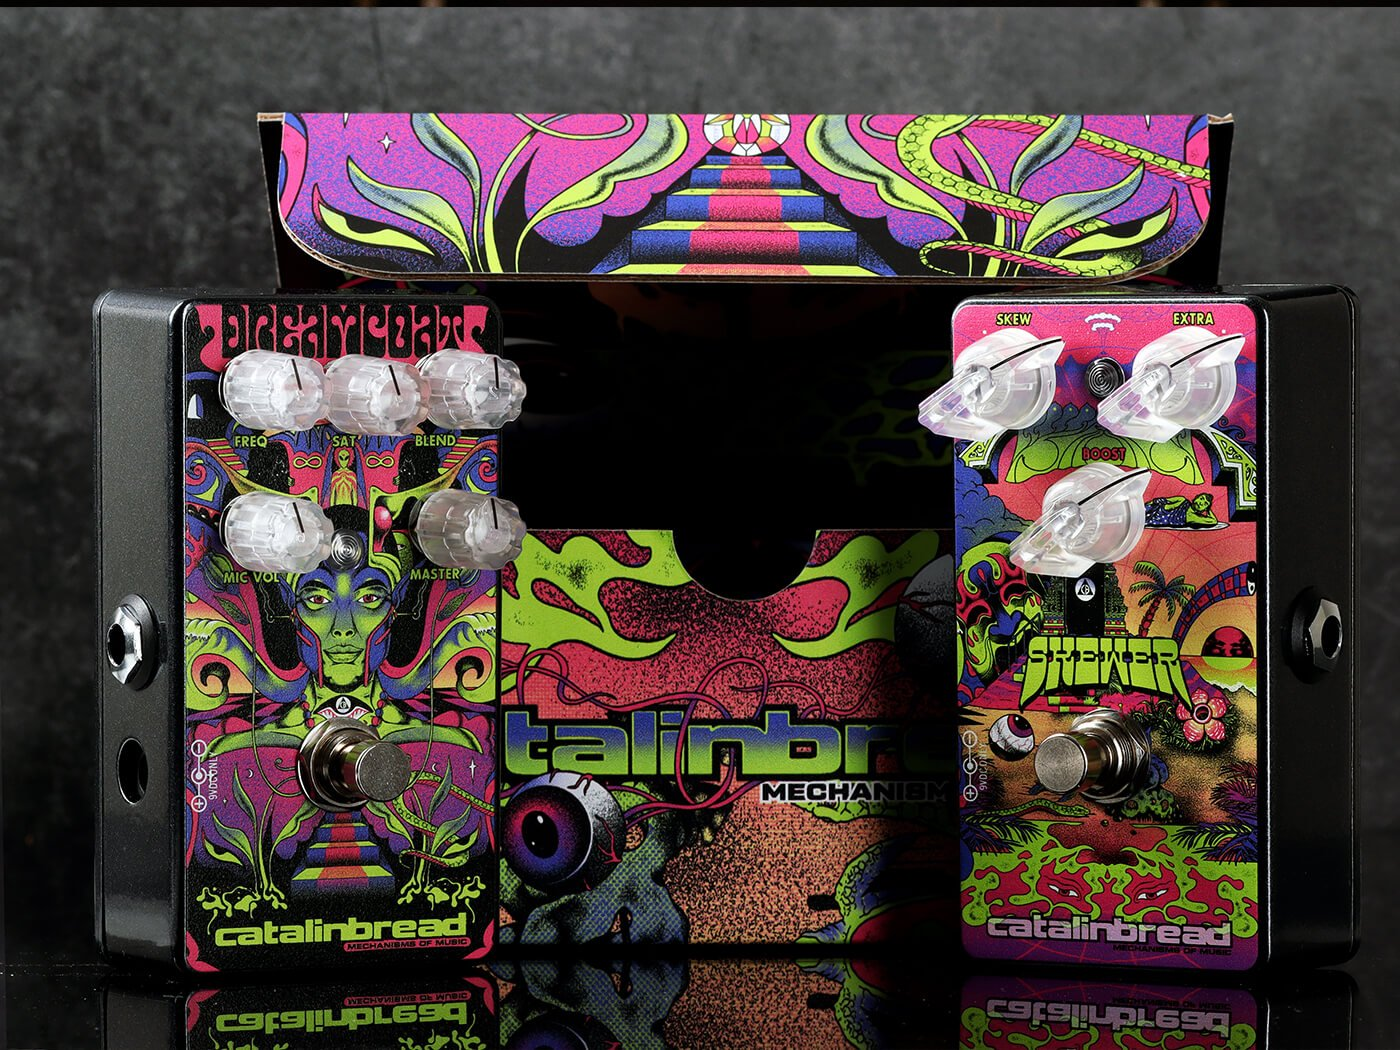 Catalinbread Limited Edition Box Set Dreamcoat and Skewer Combo